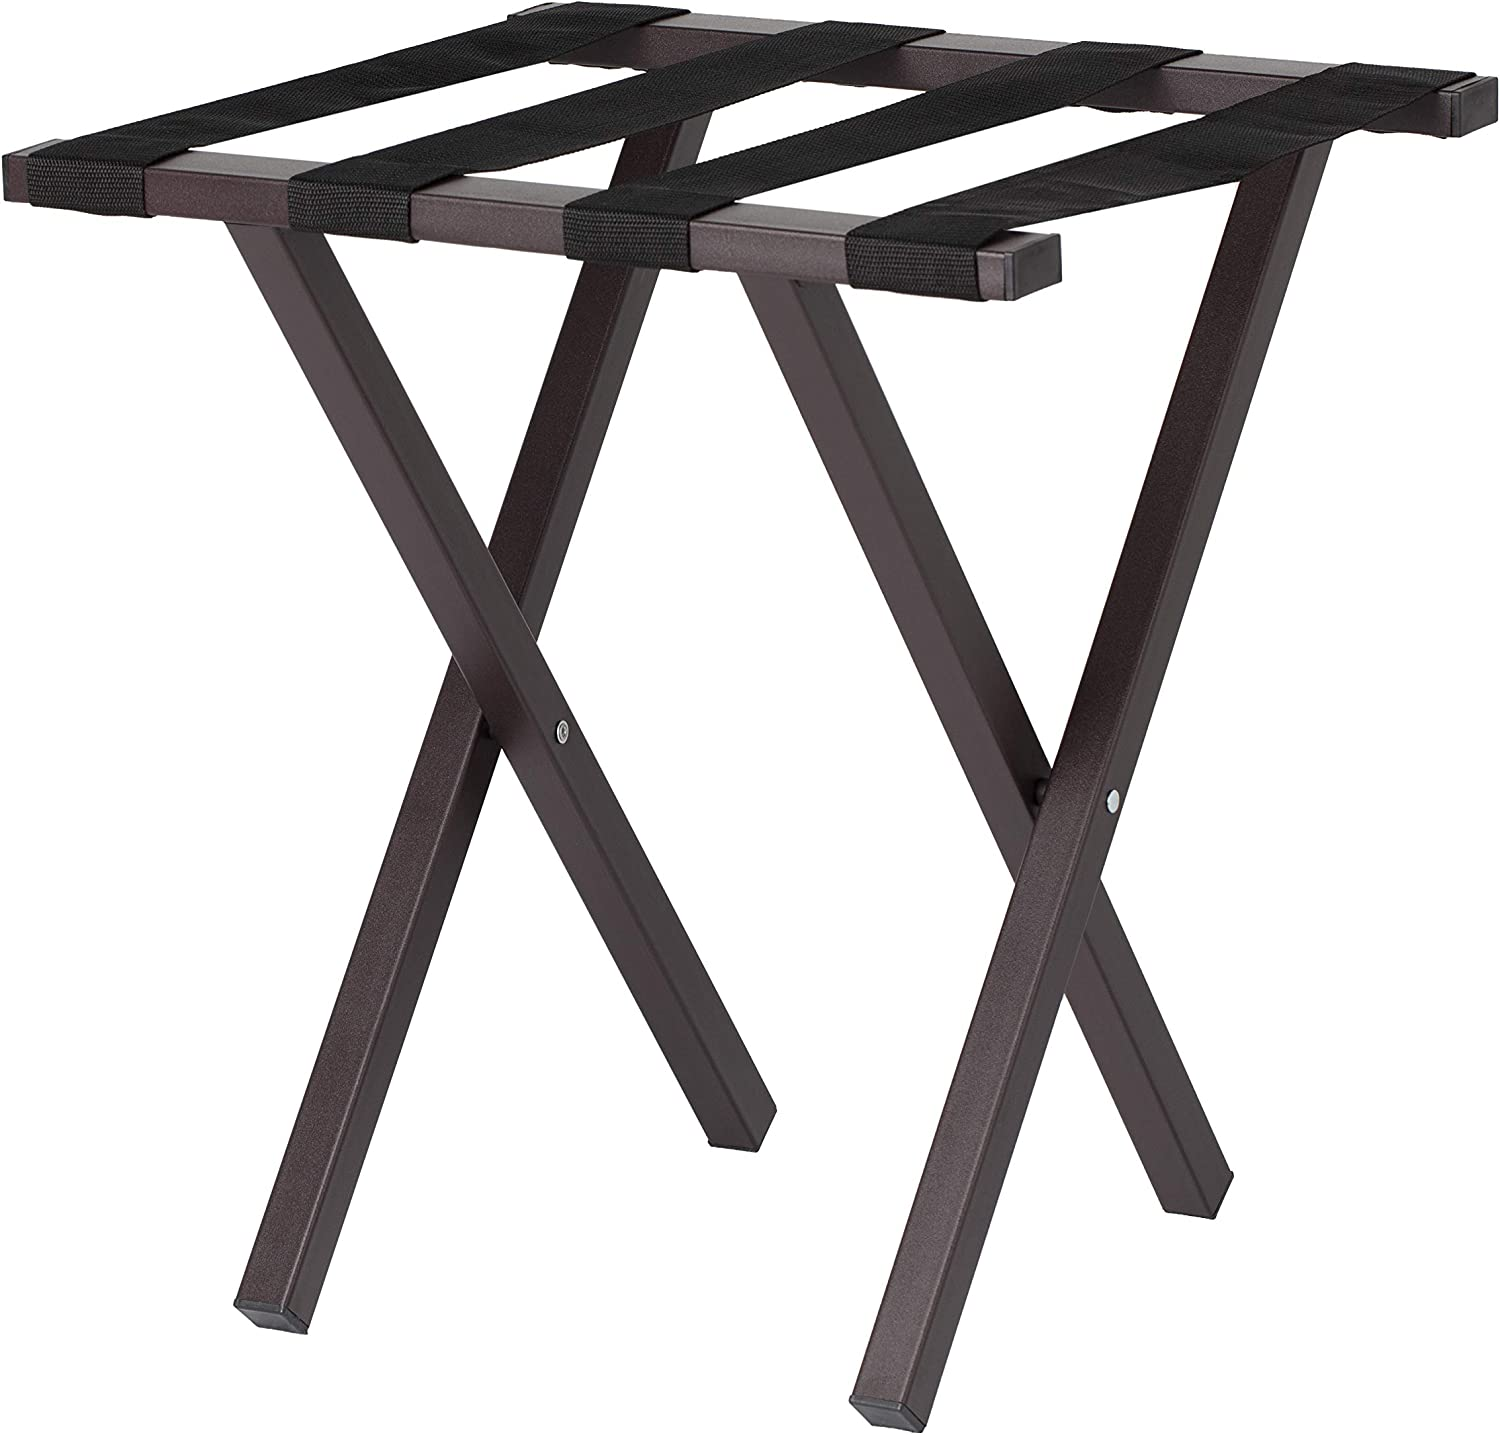 Wholesale Hotel Products Compact Metal Luggage Rack, Brown Powder Coat Finish, No Assembly Required